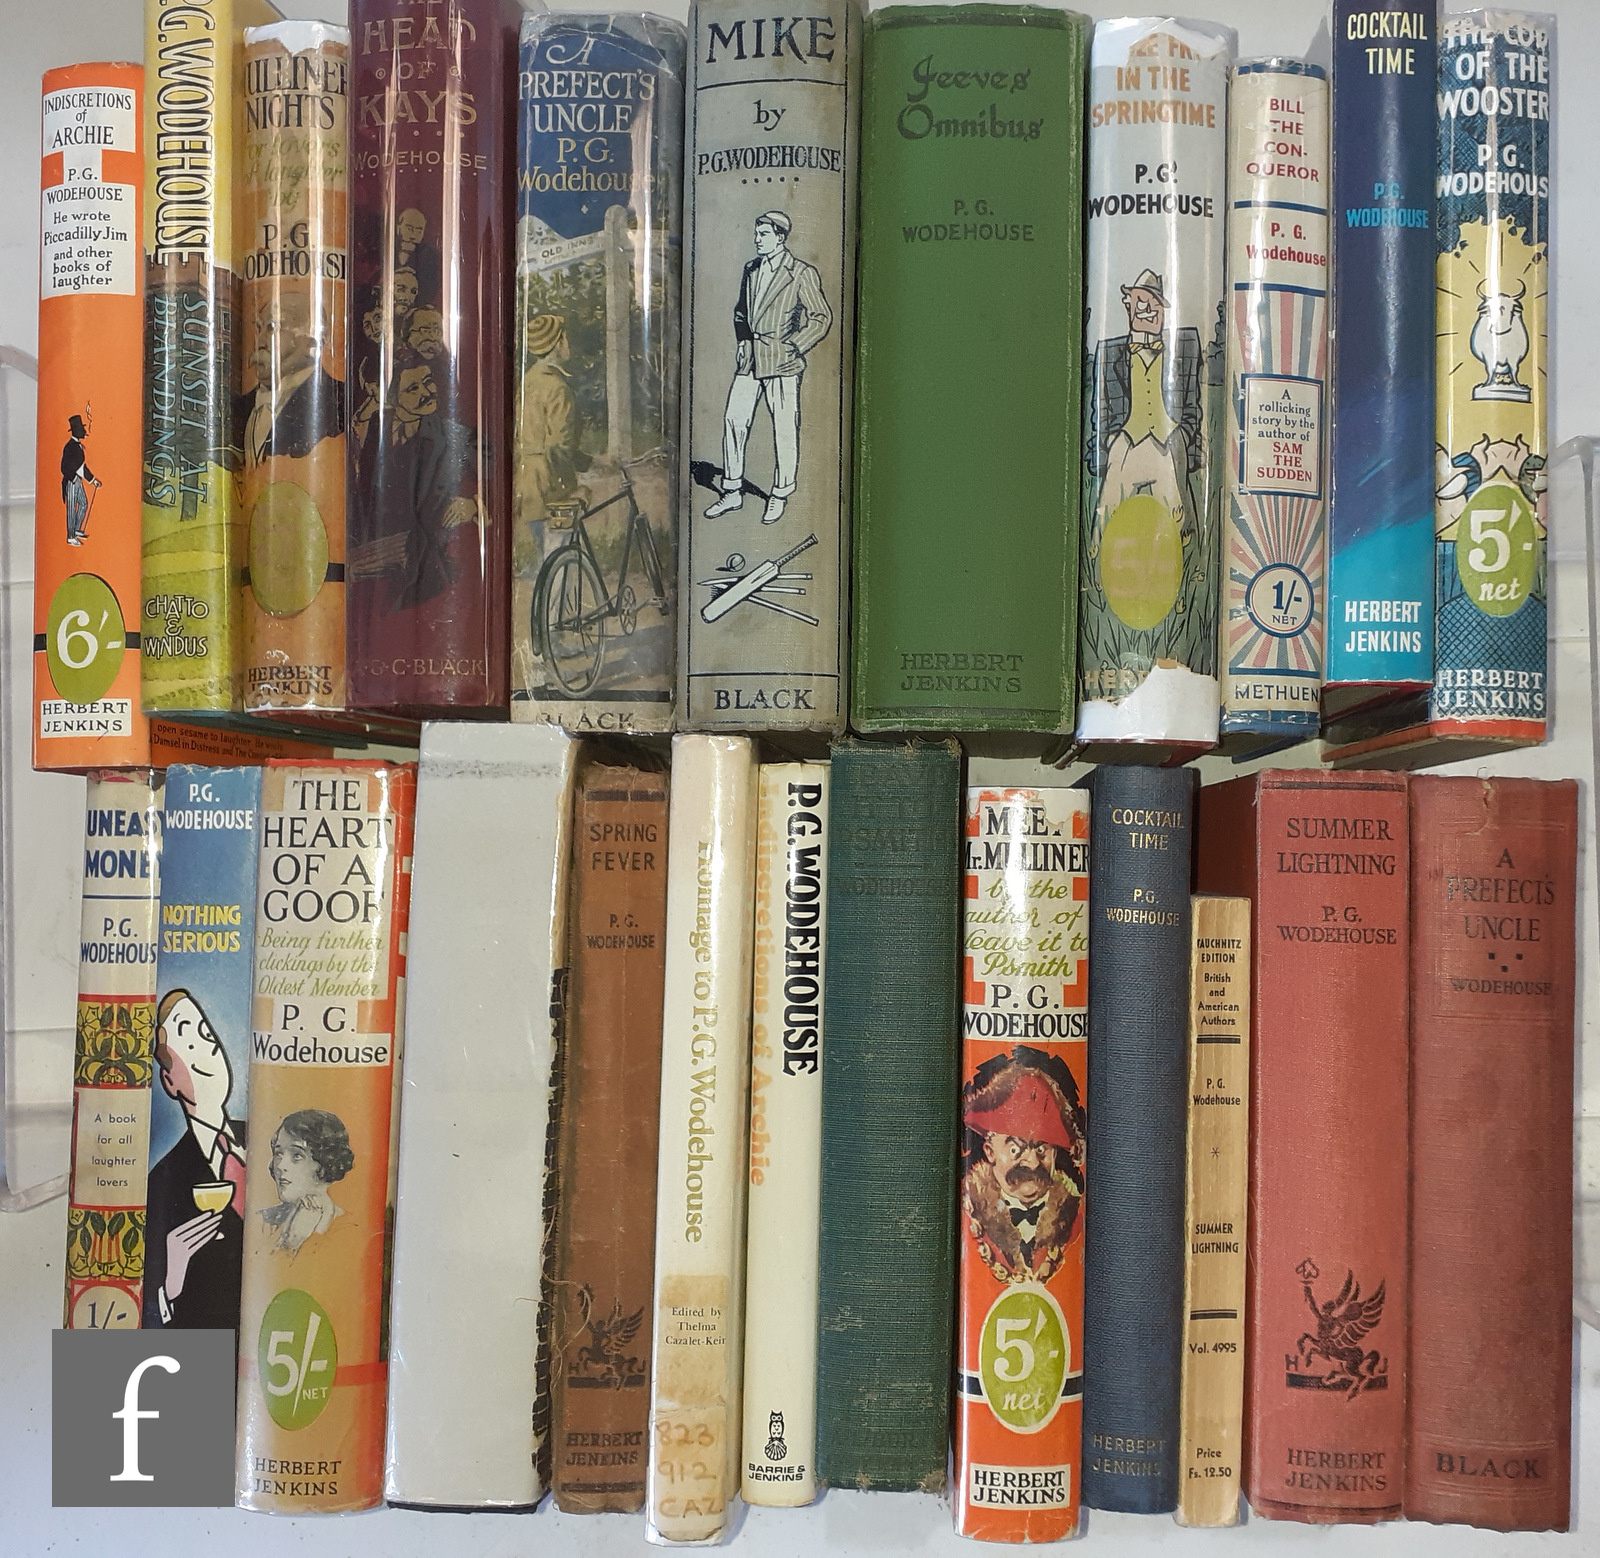 A large quantity of P. G. Wodehouse novels to include 'The Head of Kays', published by A. & C. Black